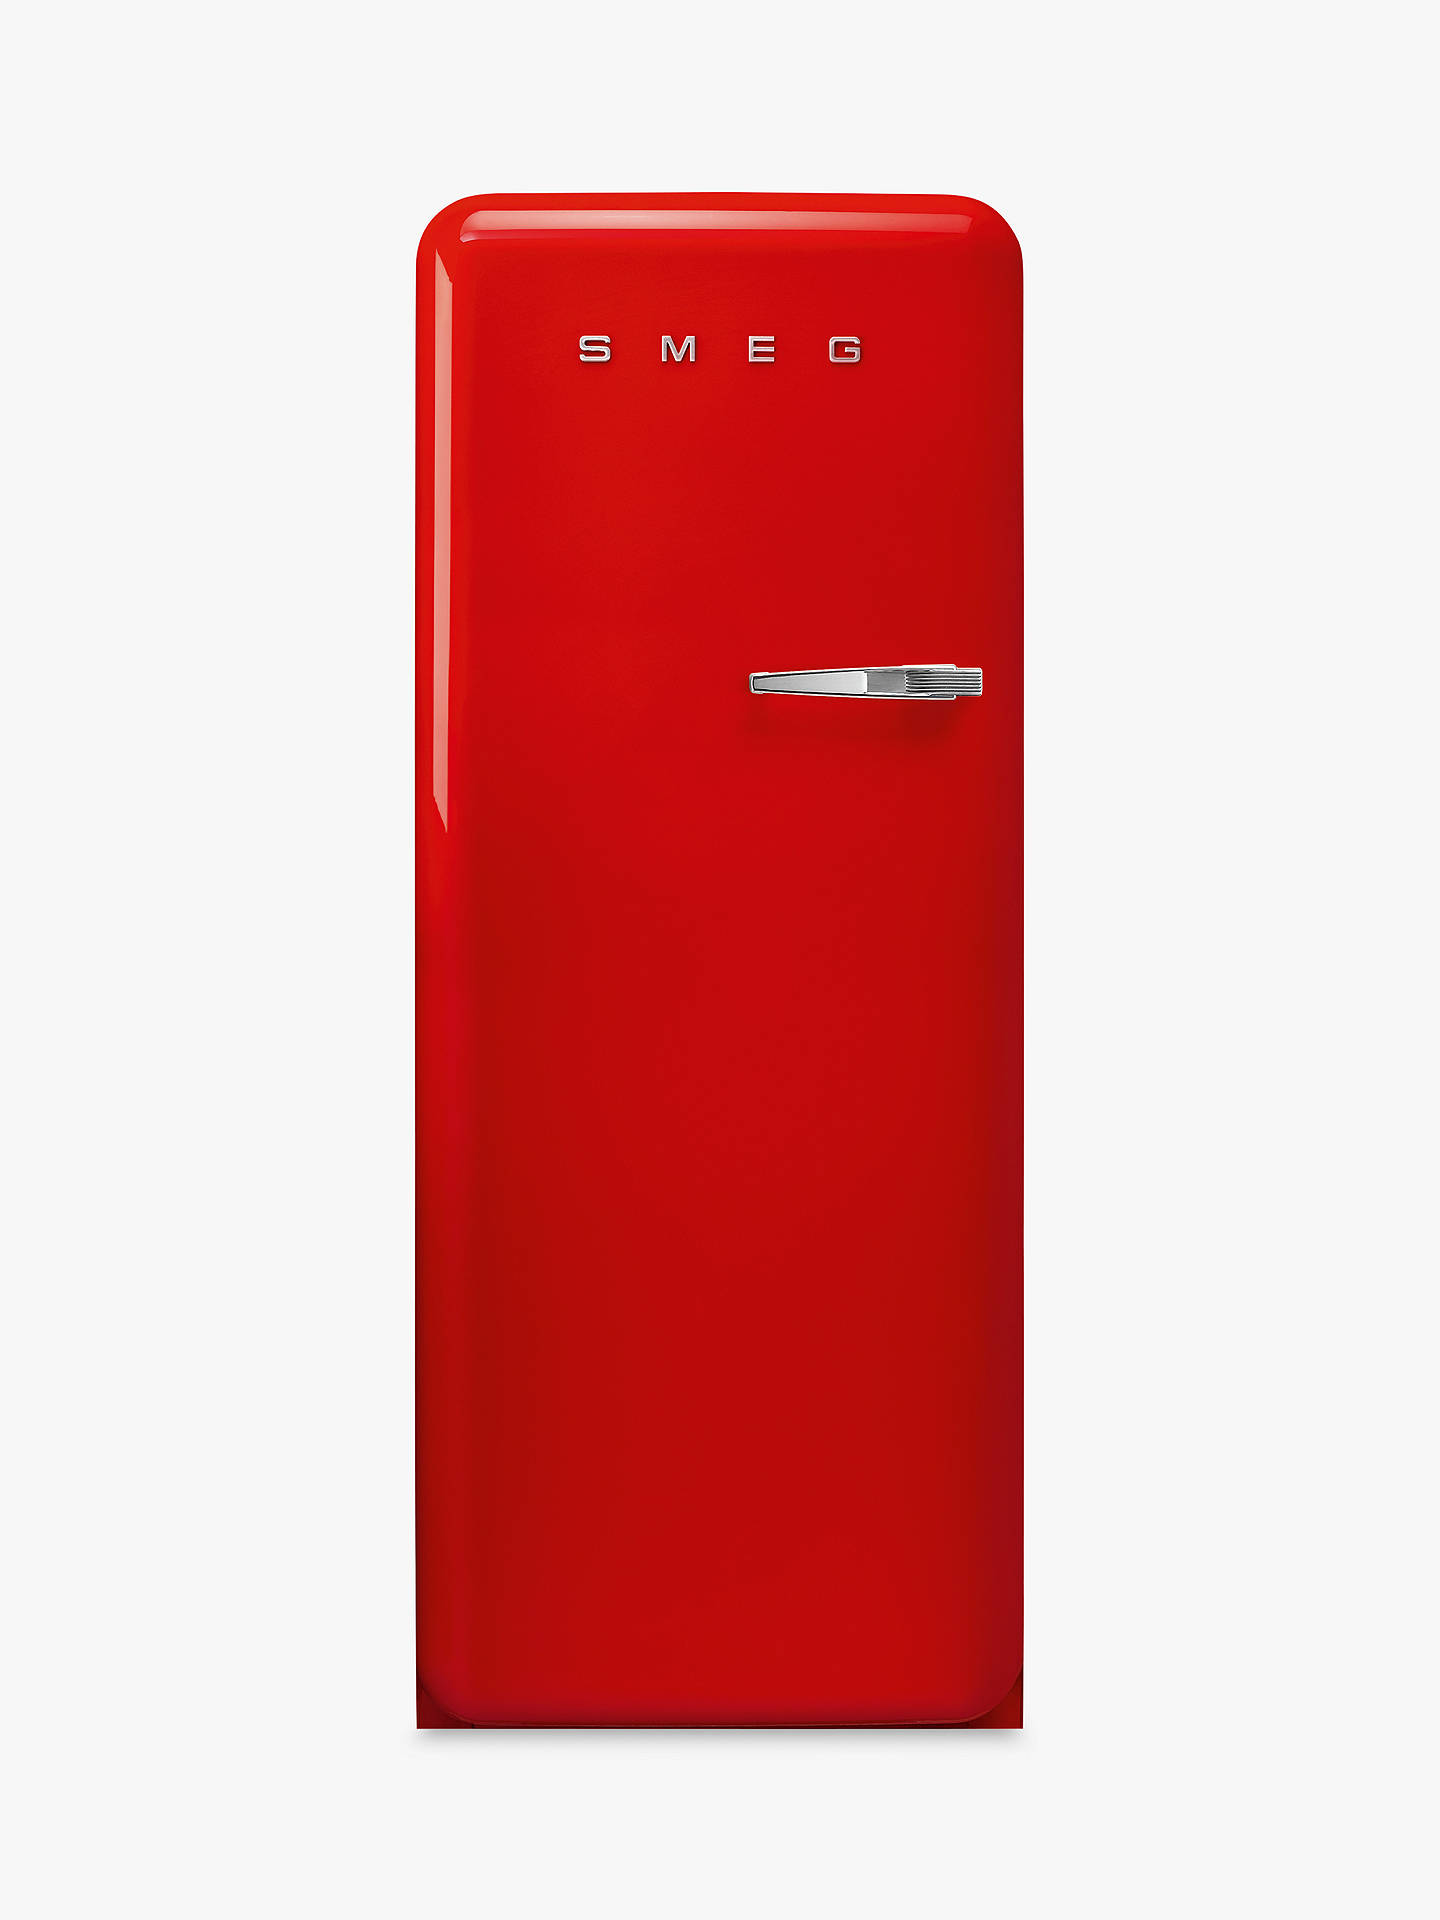 BuySmeg FAB28LRD3UK Freestanding Fridge with Freezer Compartment, A+++ Energy Rating, 60cm Wide, Left-Hand Hinge, Red Online at johnlewis.com